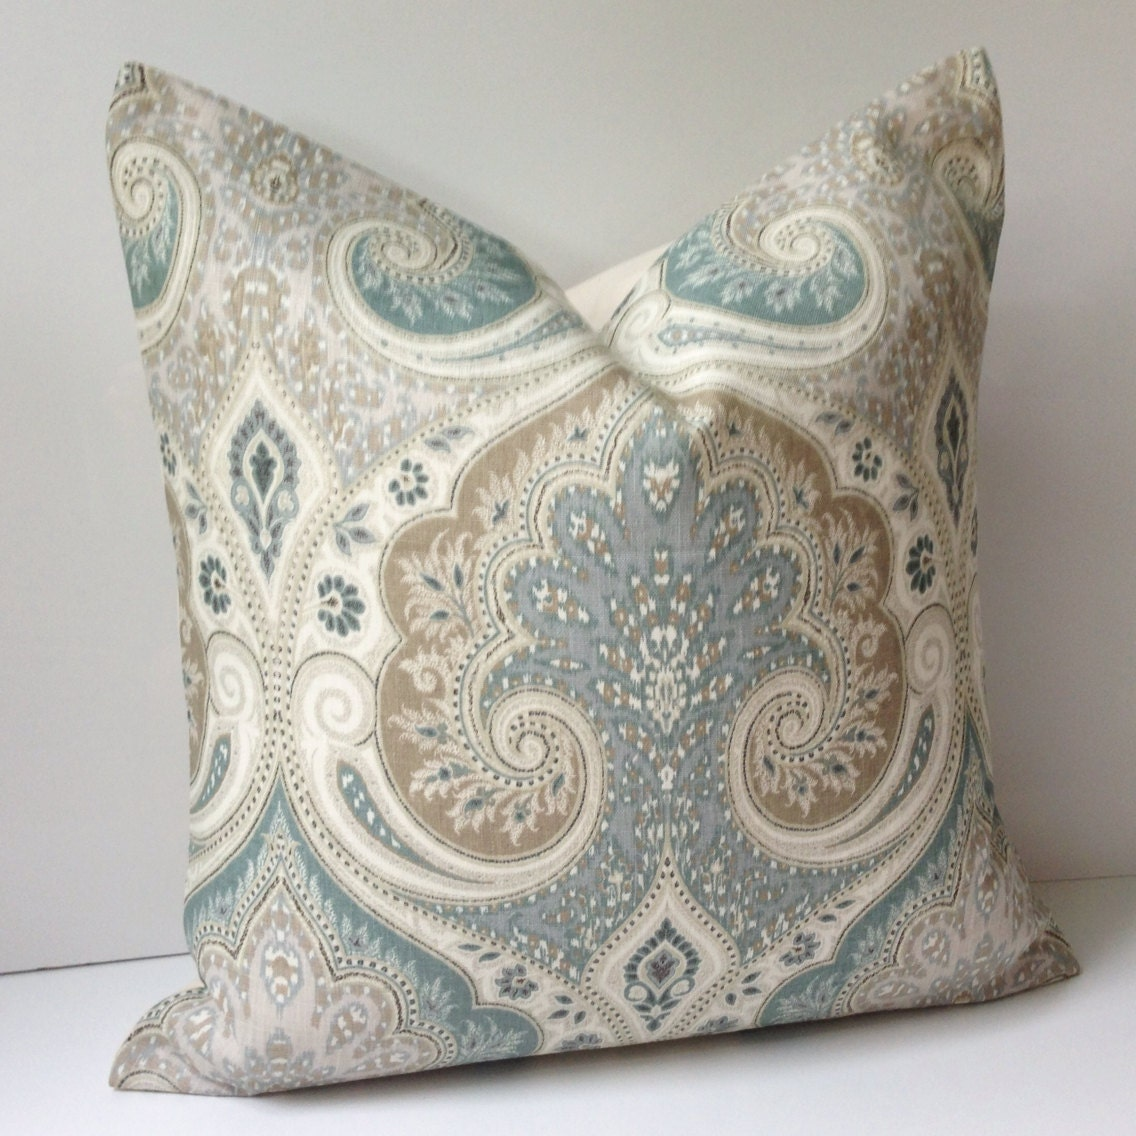 Throw Pillows Damask : Damask Pillow Cover Decorative Throw Pillow Seafoam Cushion